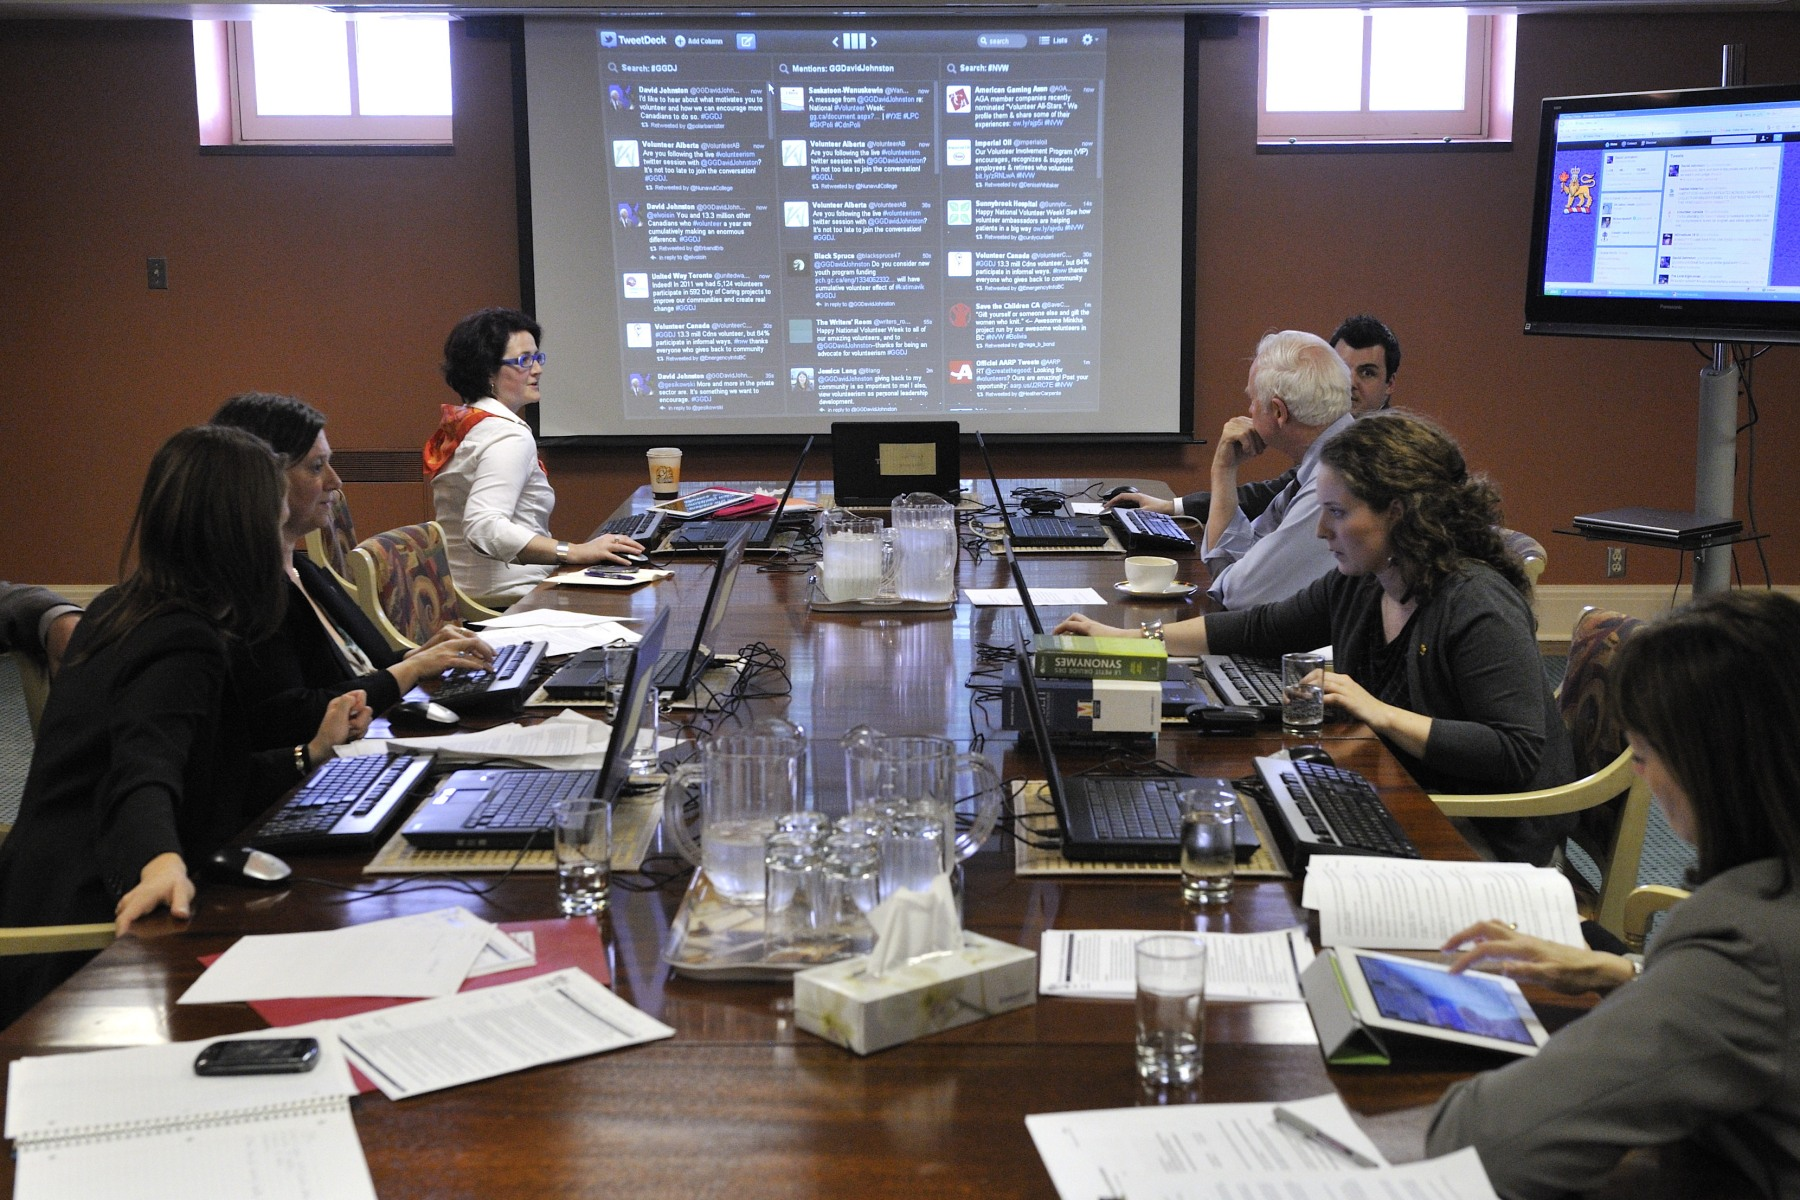 The Governor General invited all Canadians to join him for a 45-minute live Twitter session.